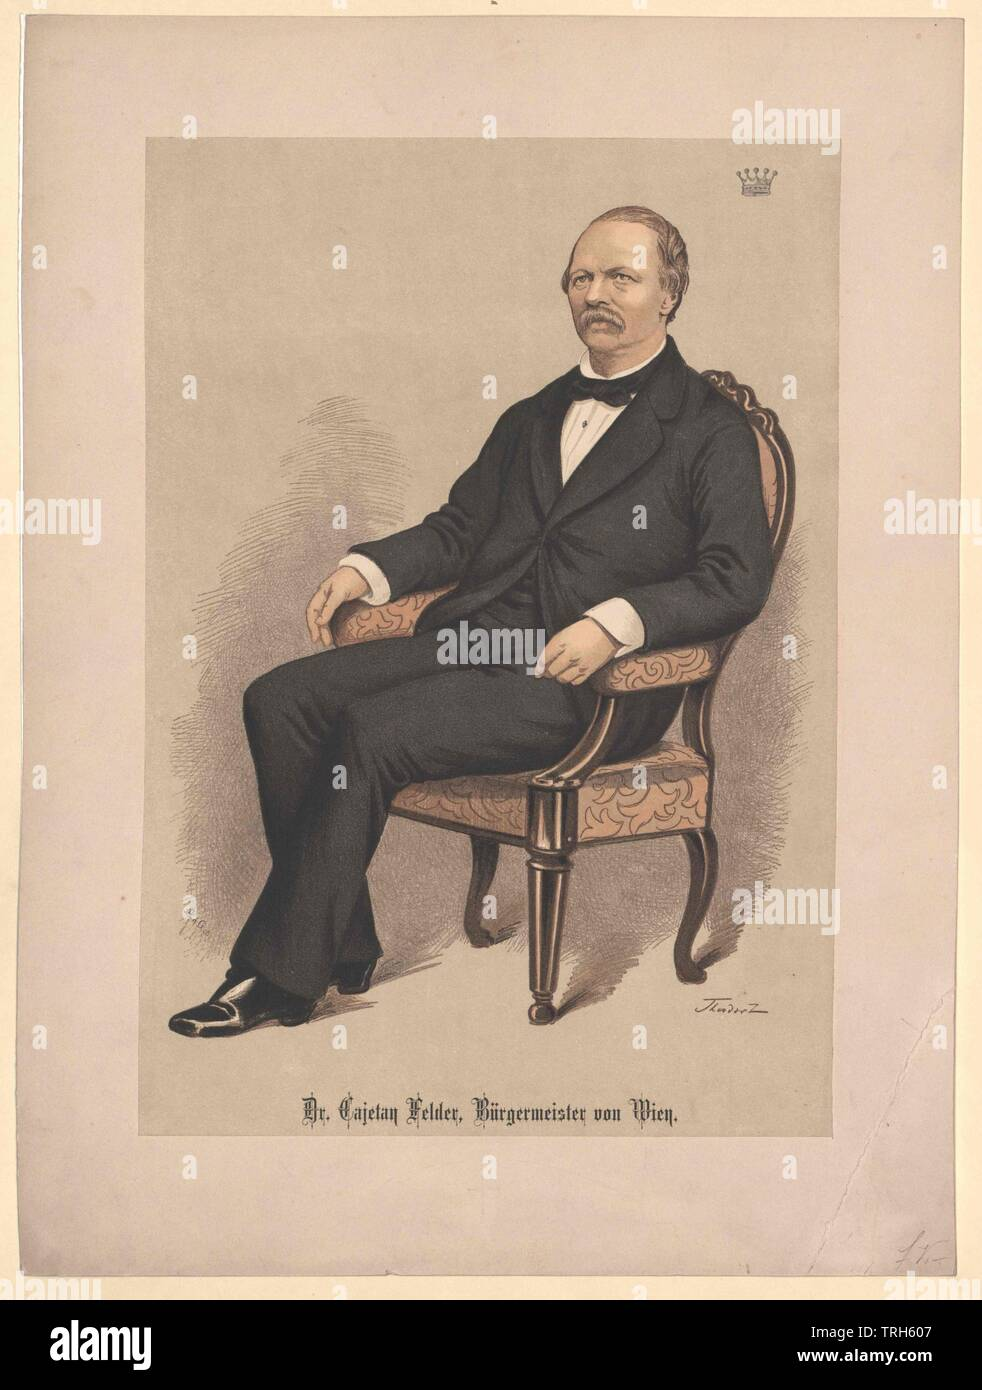 Felder, Cajetan Baron of (1814-1894), assemblymen, deputy, assemblyman, office holder, officeholder, office holders, officeholders, politics, policy, politician, politicians, people, full-length, full length, man, men, male, manly, 19th century, Additional-Rights-Clearance-Info-Not-Available - Stock Image